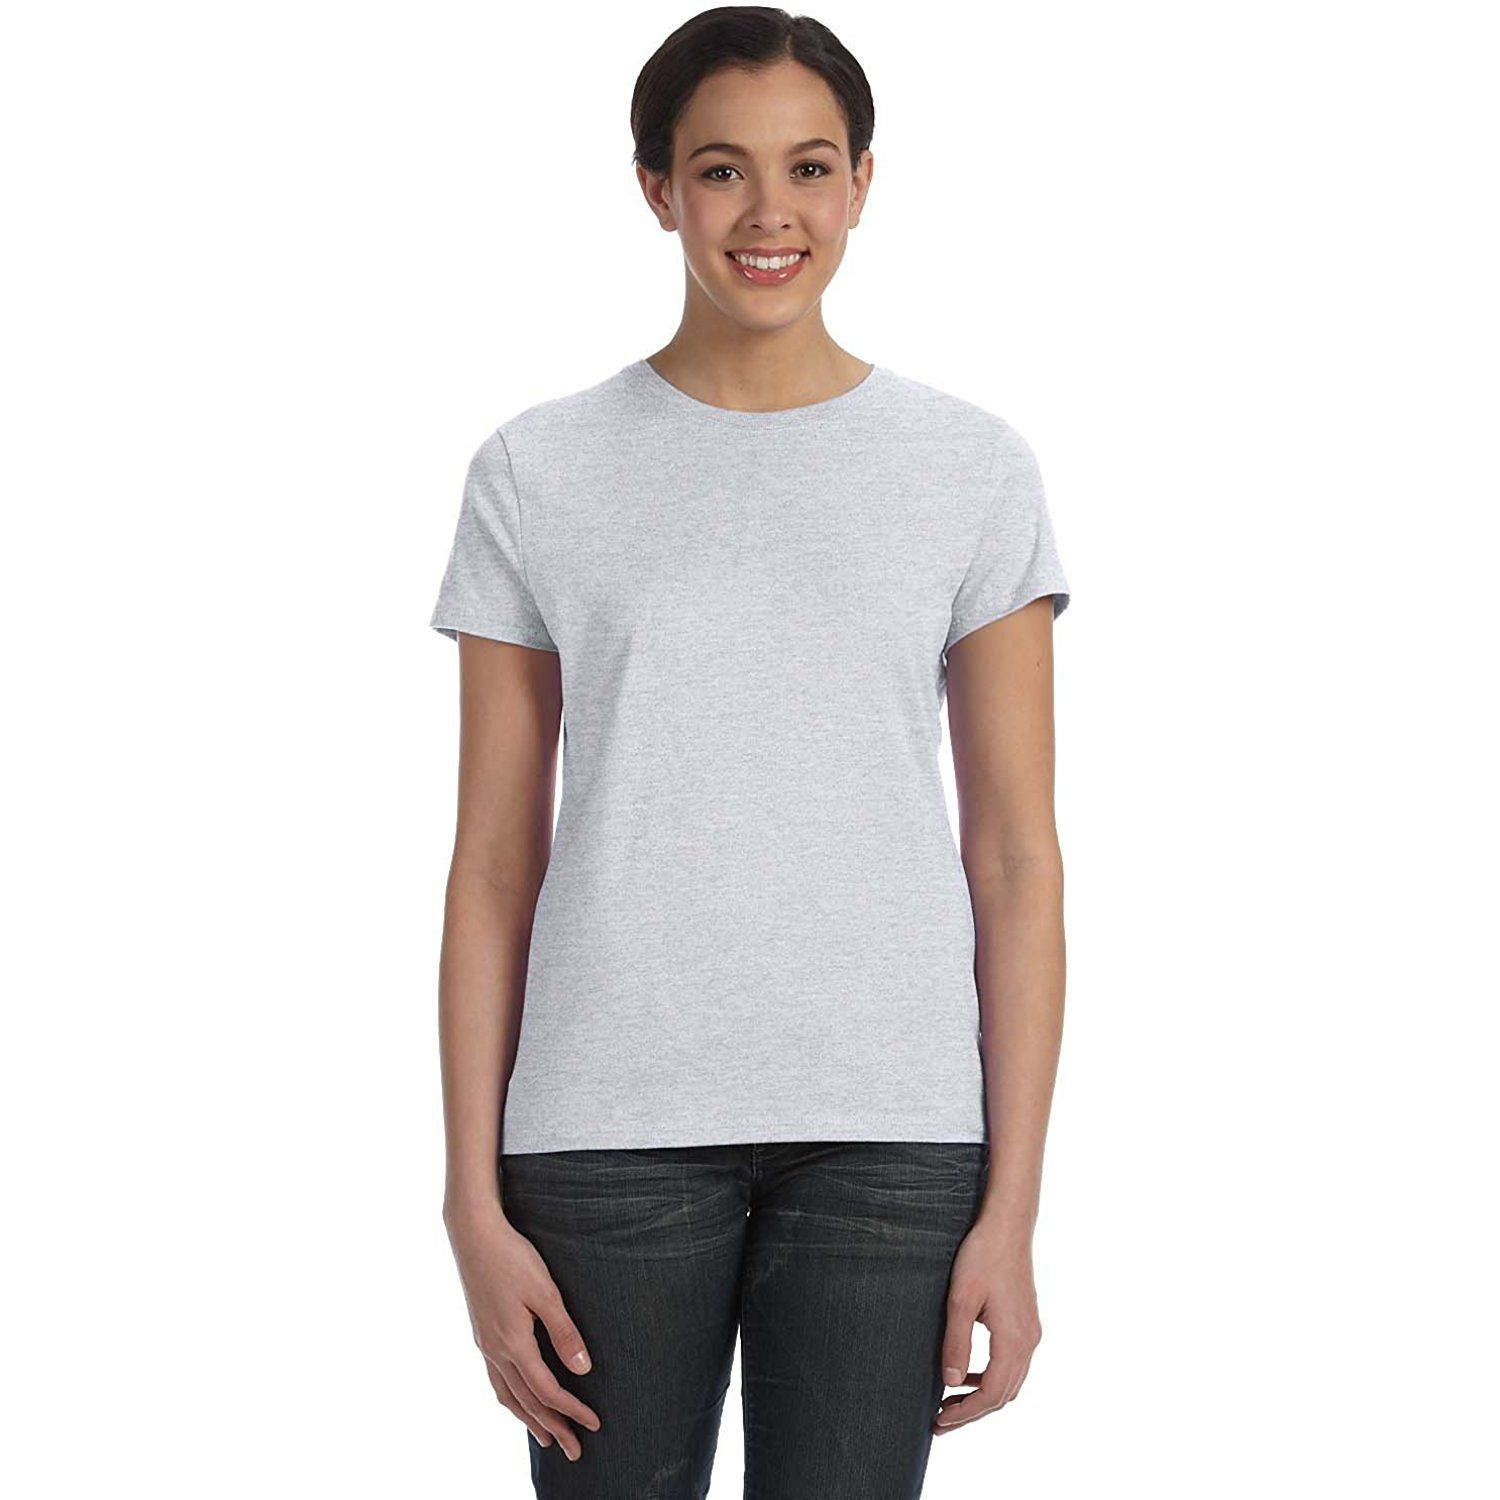 d222d9465ca12 Hanes Womens T Shirt Pack - Joe Maloy